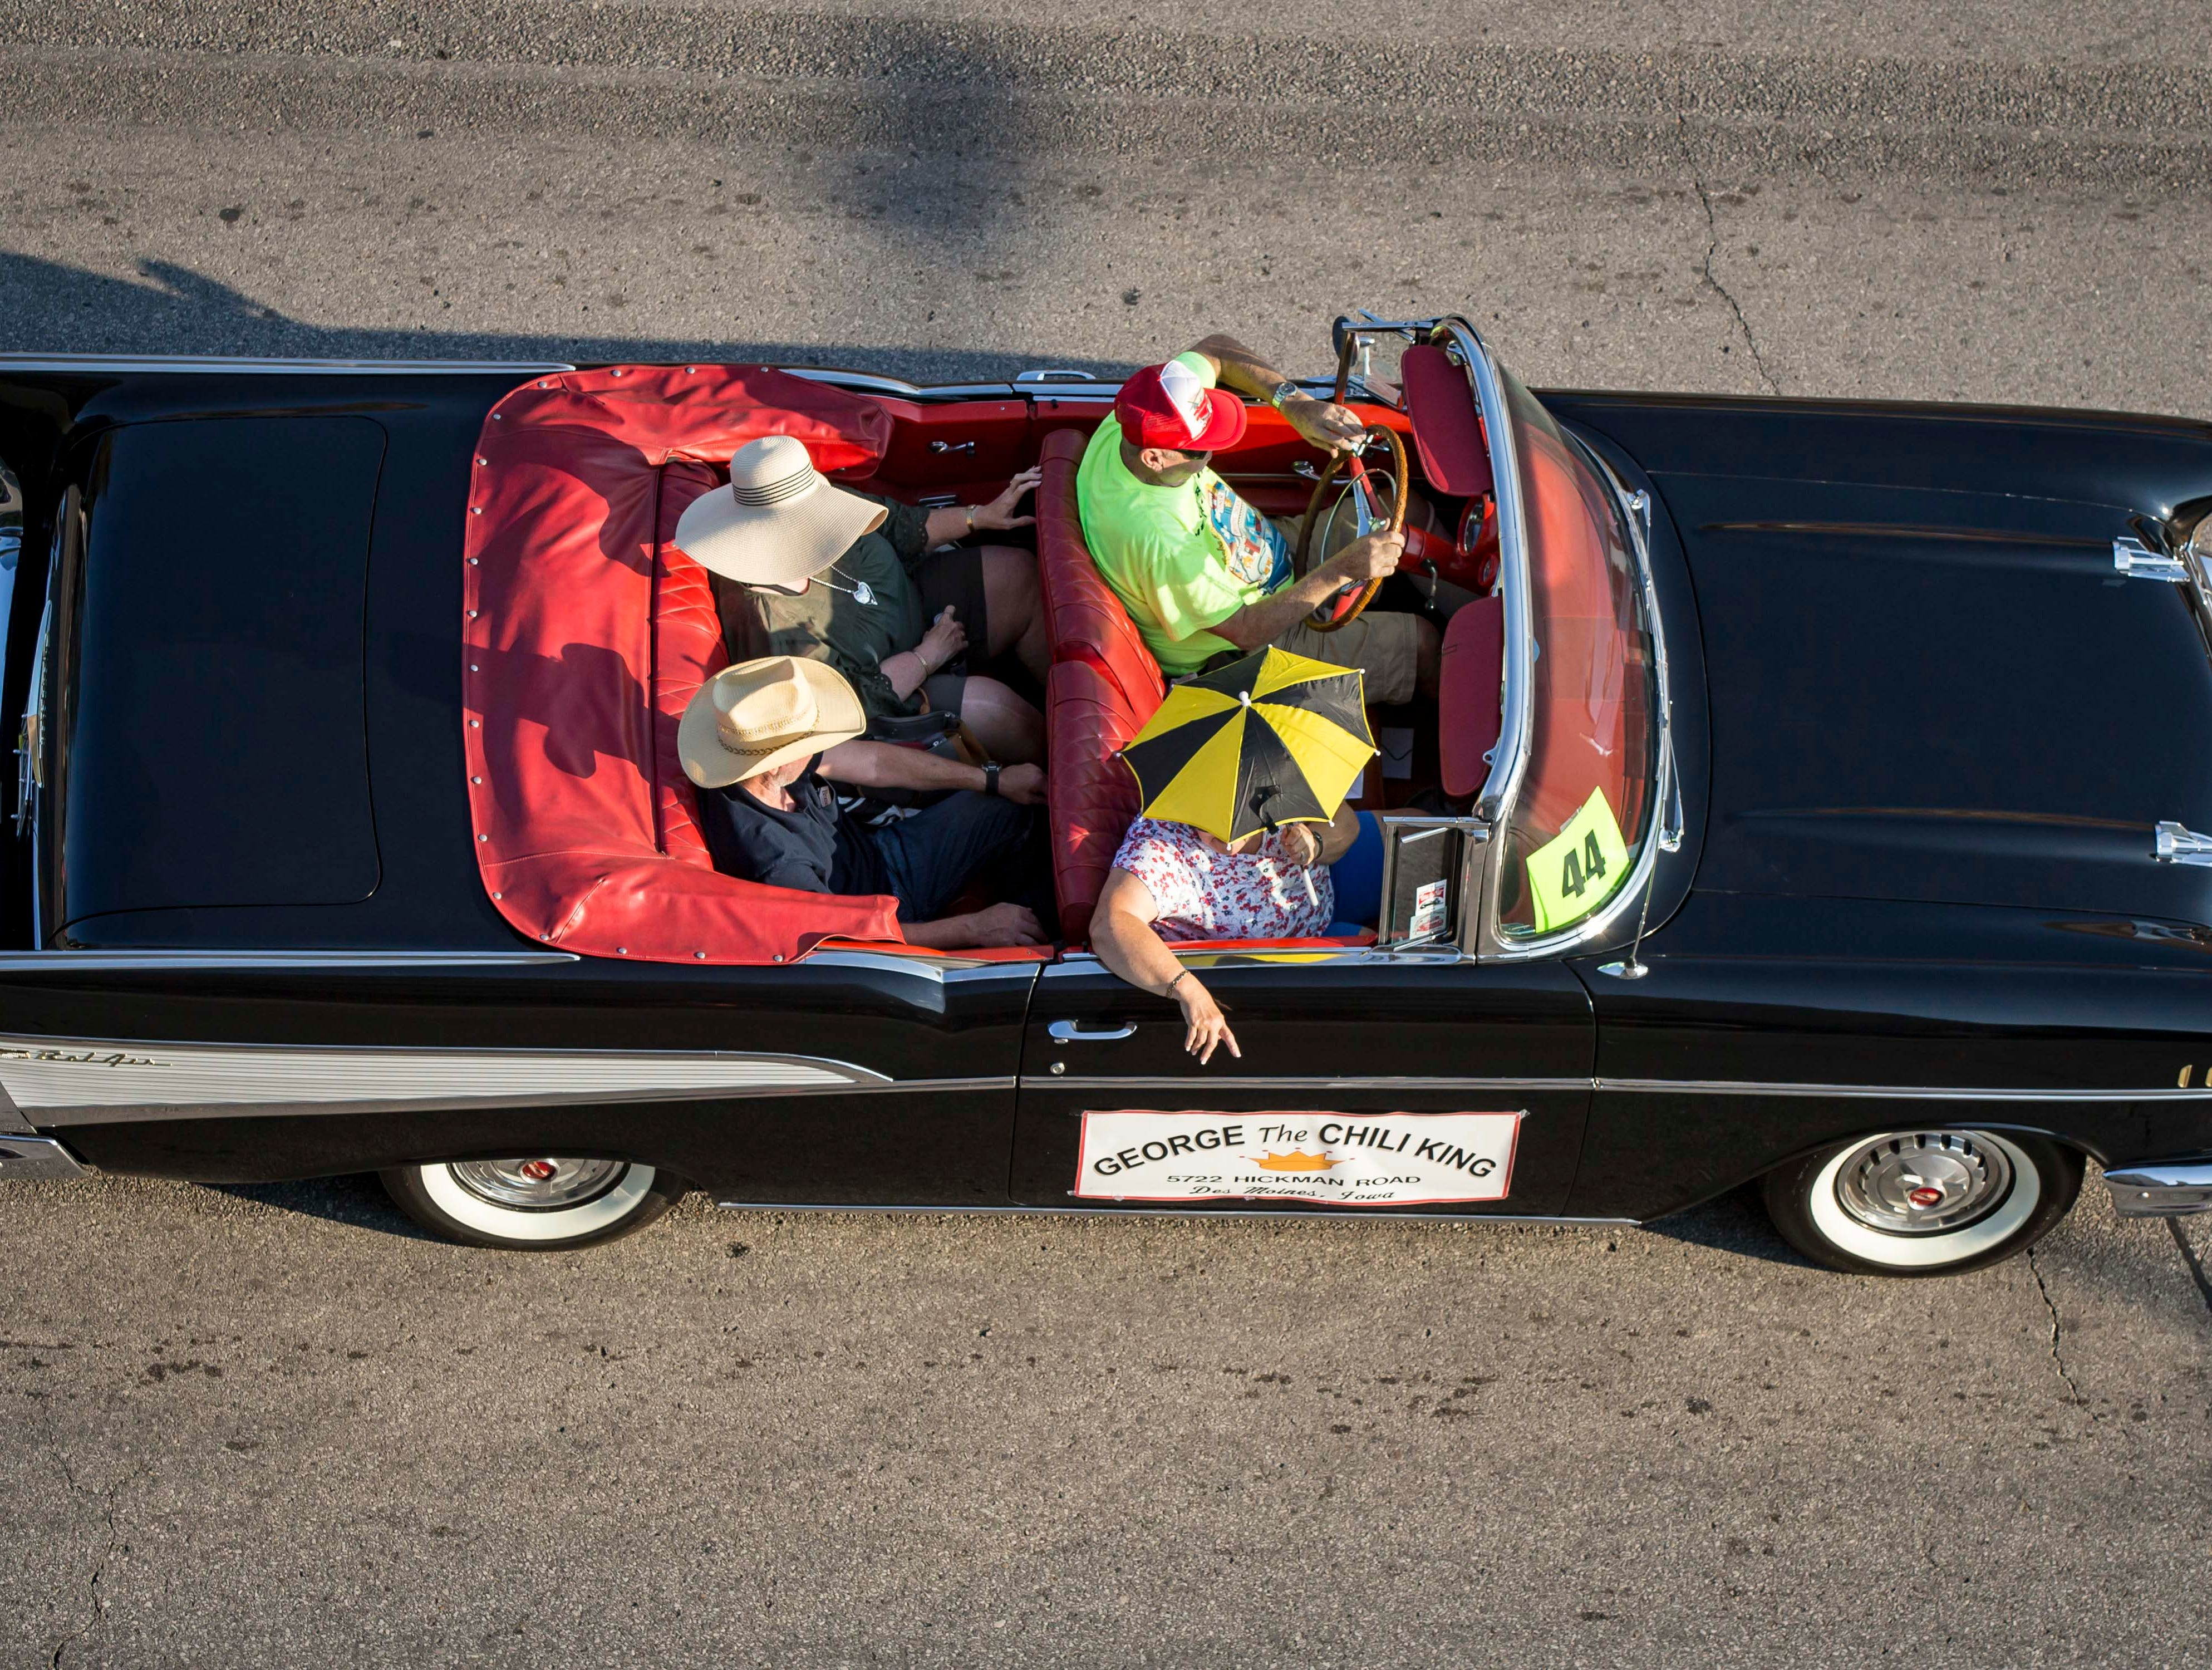 George the Chili King is represented in the 2018 Iowa State Fair parade from the Statehouse to downtown Des Moines Wednesday, Aug. 8, 2018. The Iowa State Fair runs from Aug. 9Ð19.